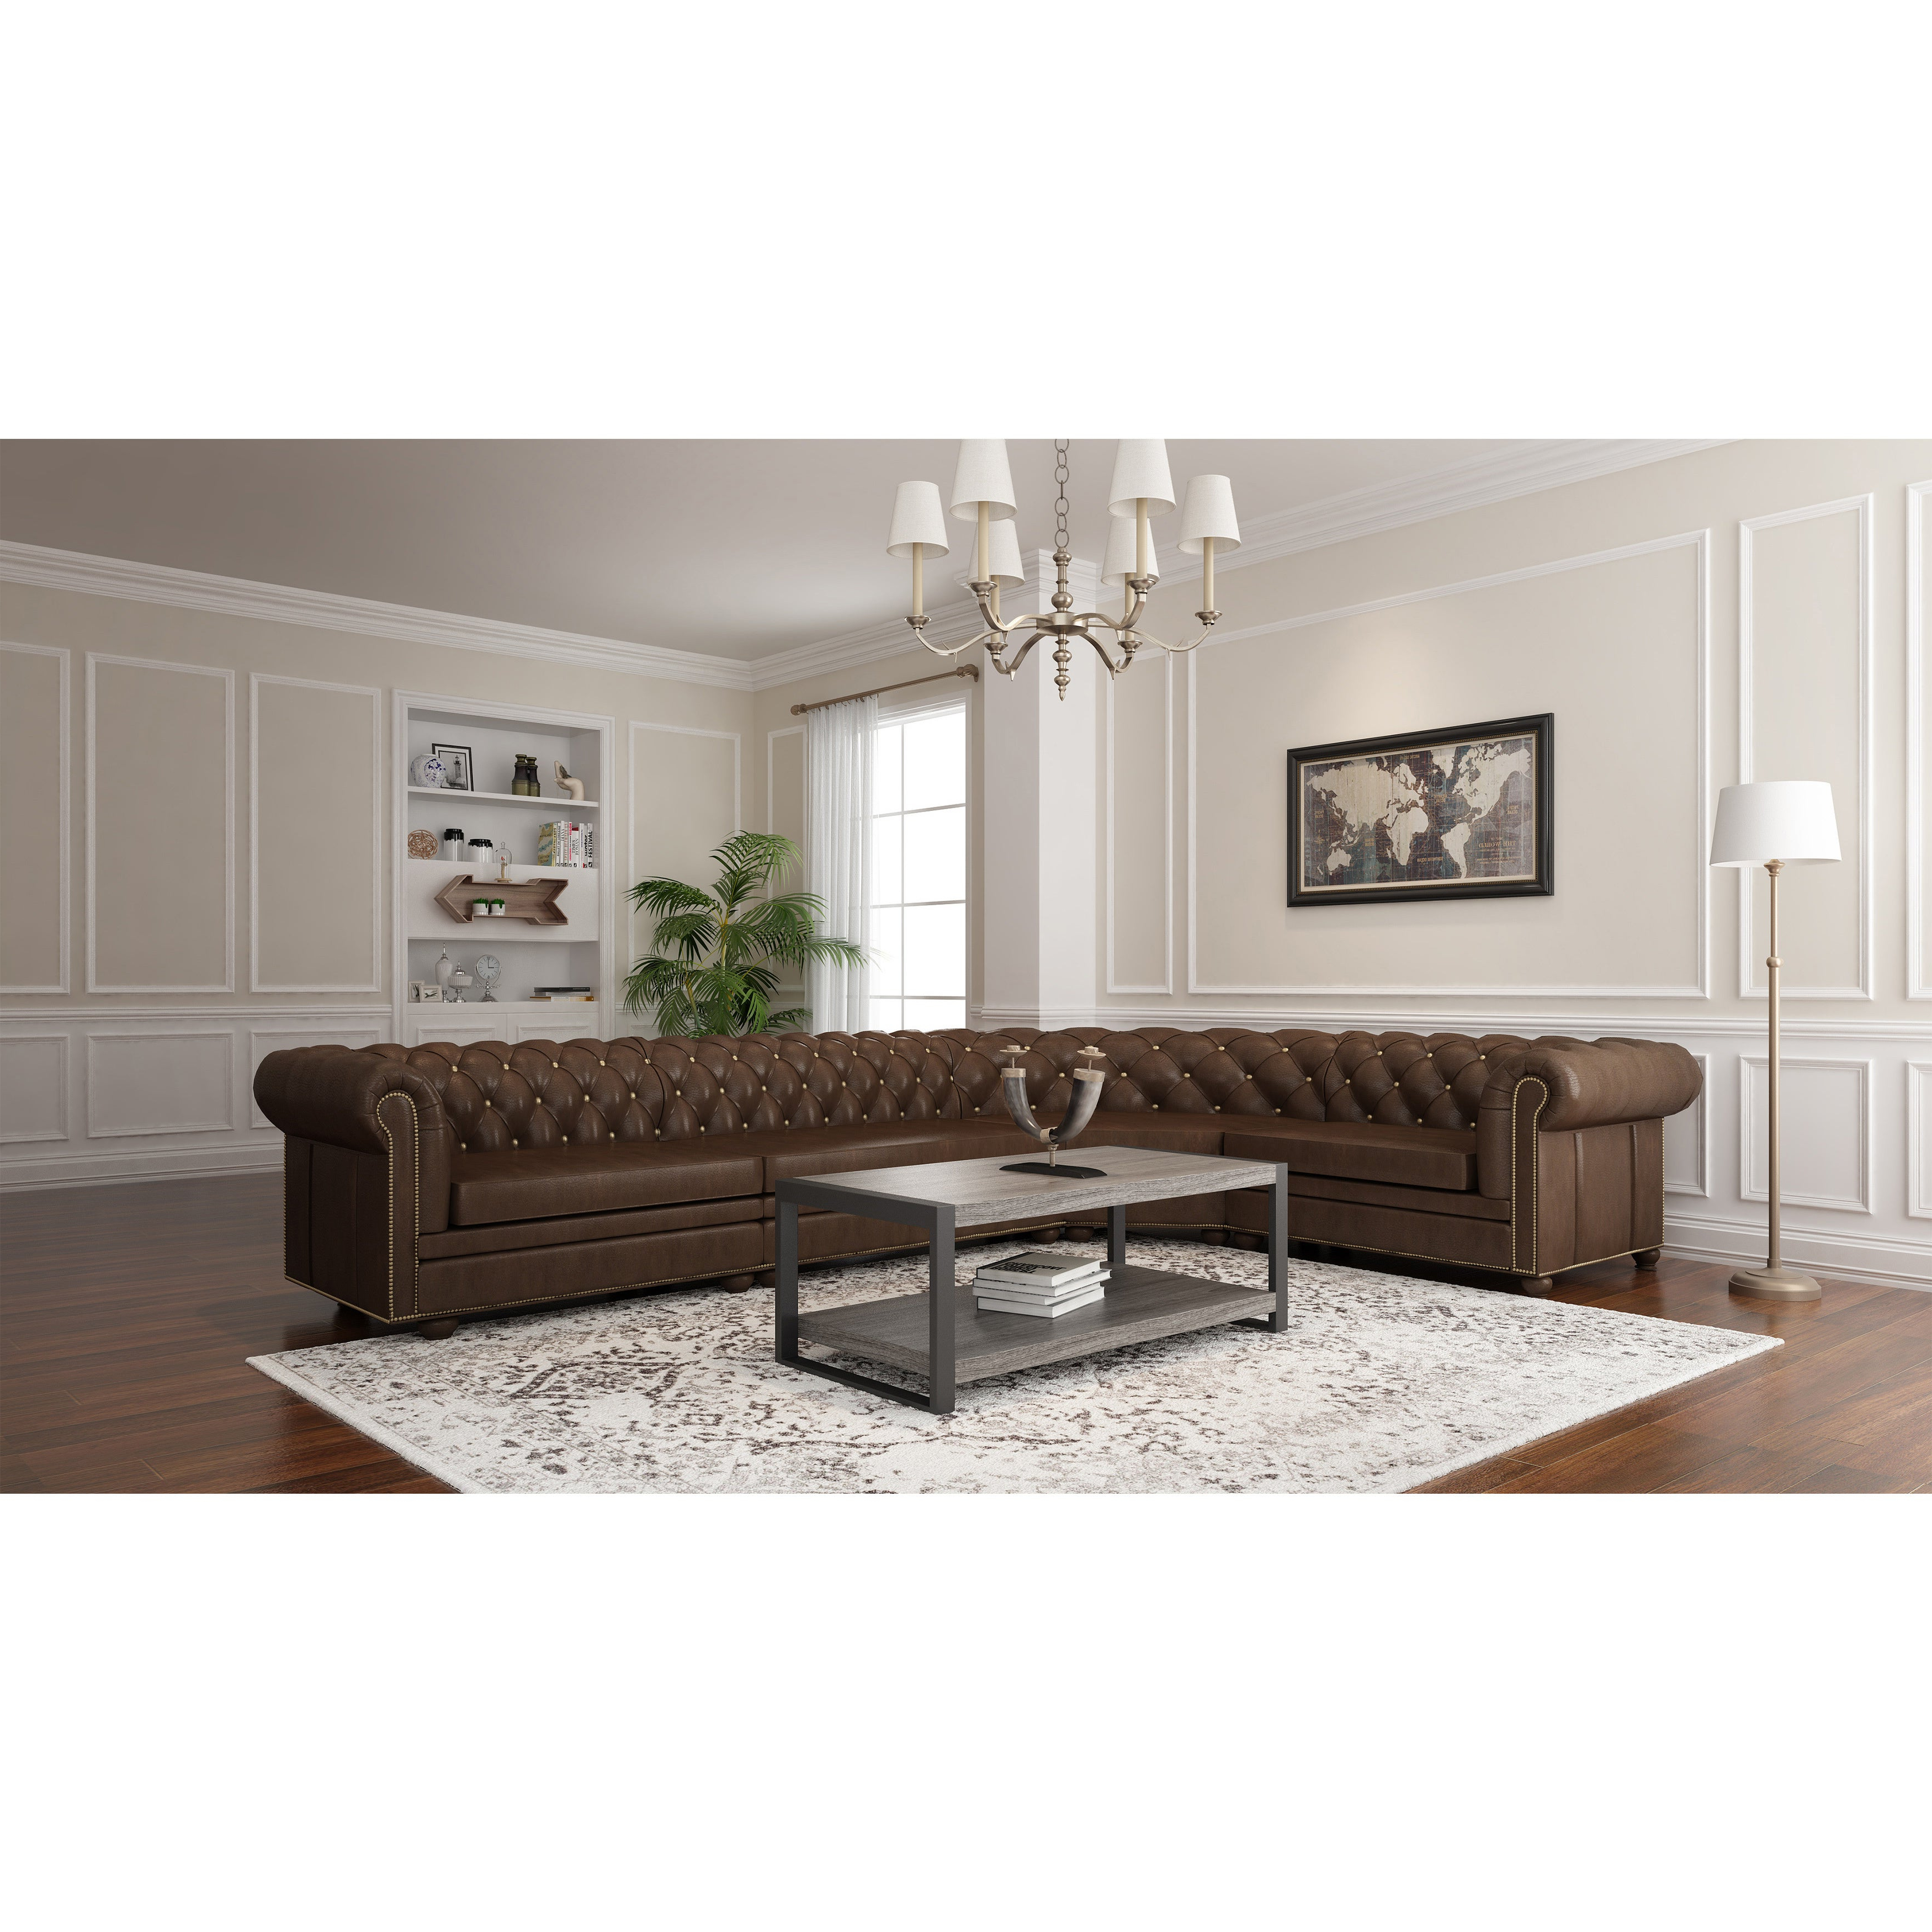 Carbon Loft Hamilton 48 Inch Coffee Table – 48 X 24 X 18H With Regard To Famous Carbon Loft Hamilton 48 Inch Coffee Tables (View 9 of 20)